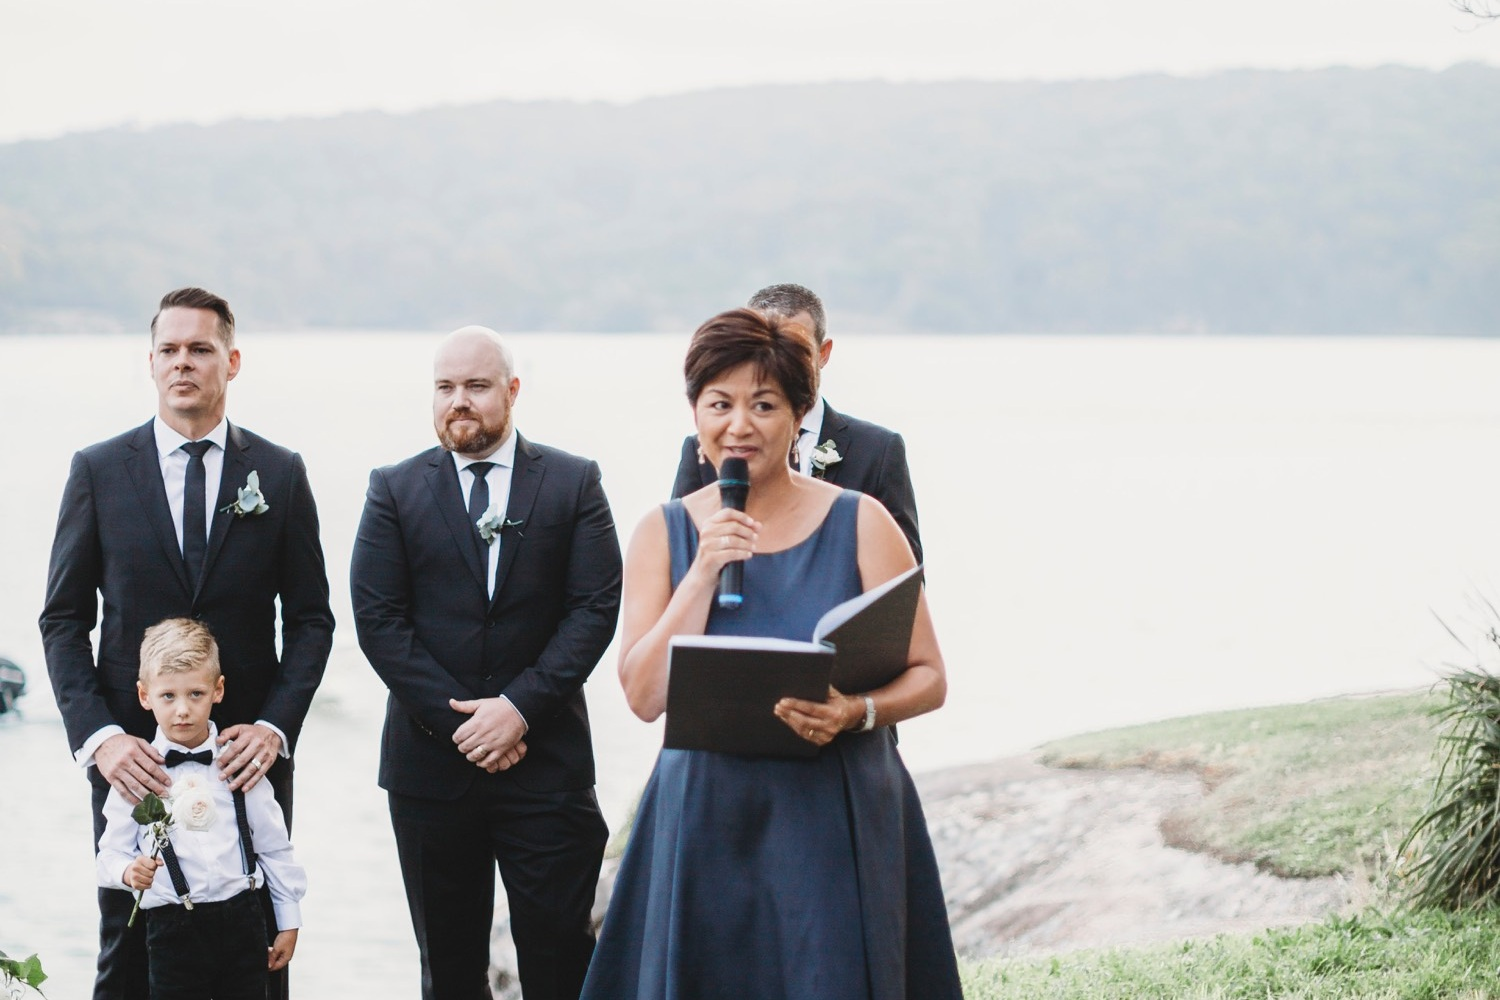 LILLIAN LYON - Multi Award Winning Marriage Celebrant - Australia's No.1 Marriage Celebrant ABIA 2011I believe there is someone for everyone in this world, regardless of status, age, or gender preference, anyone who is in a loving and…